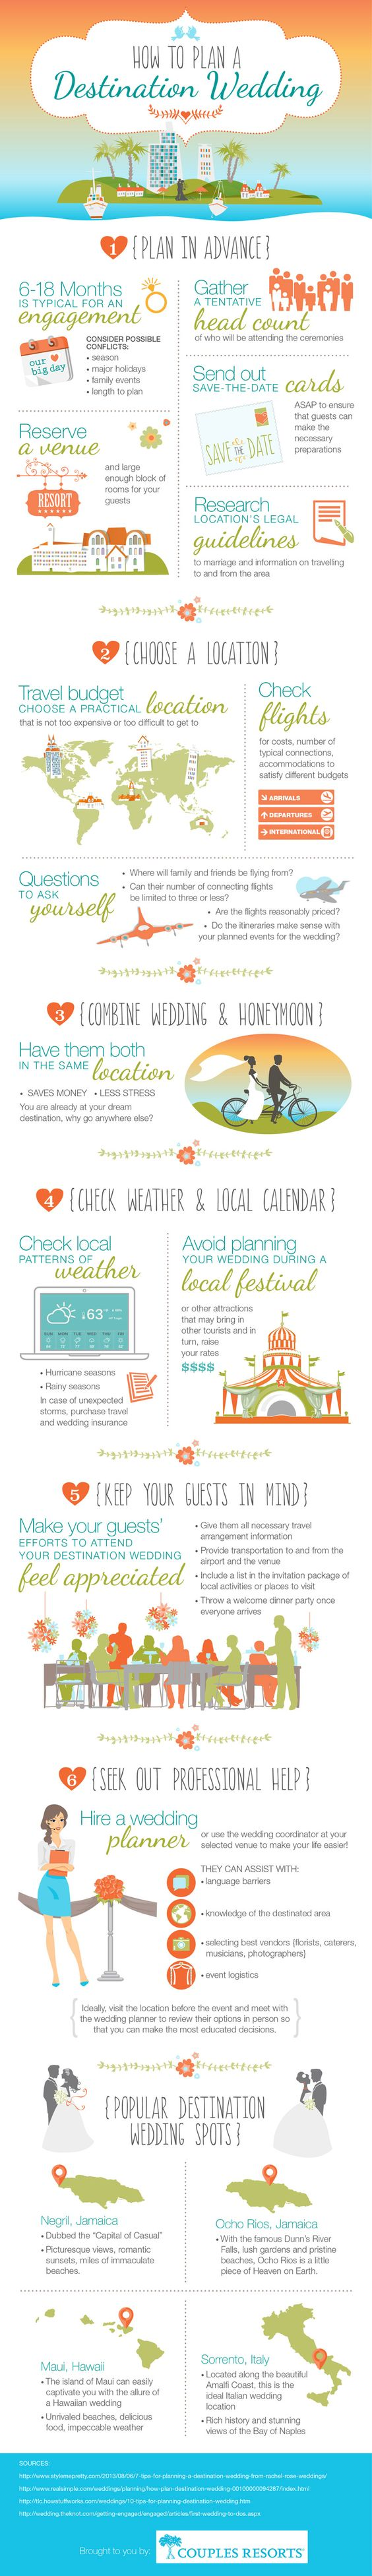 How To Plan A Destination Wedding #Infographic #Wedding #HowTo